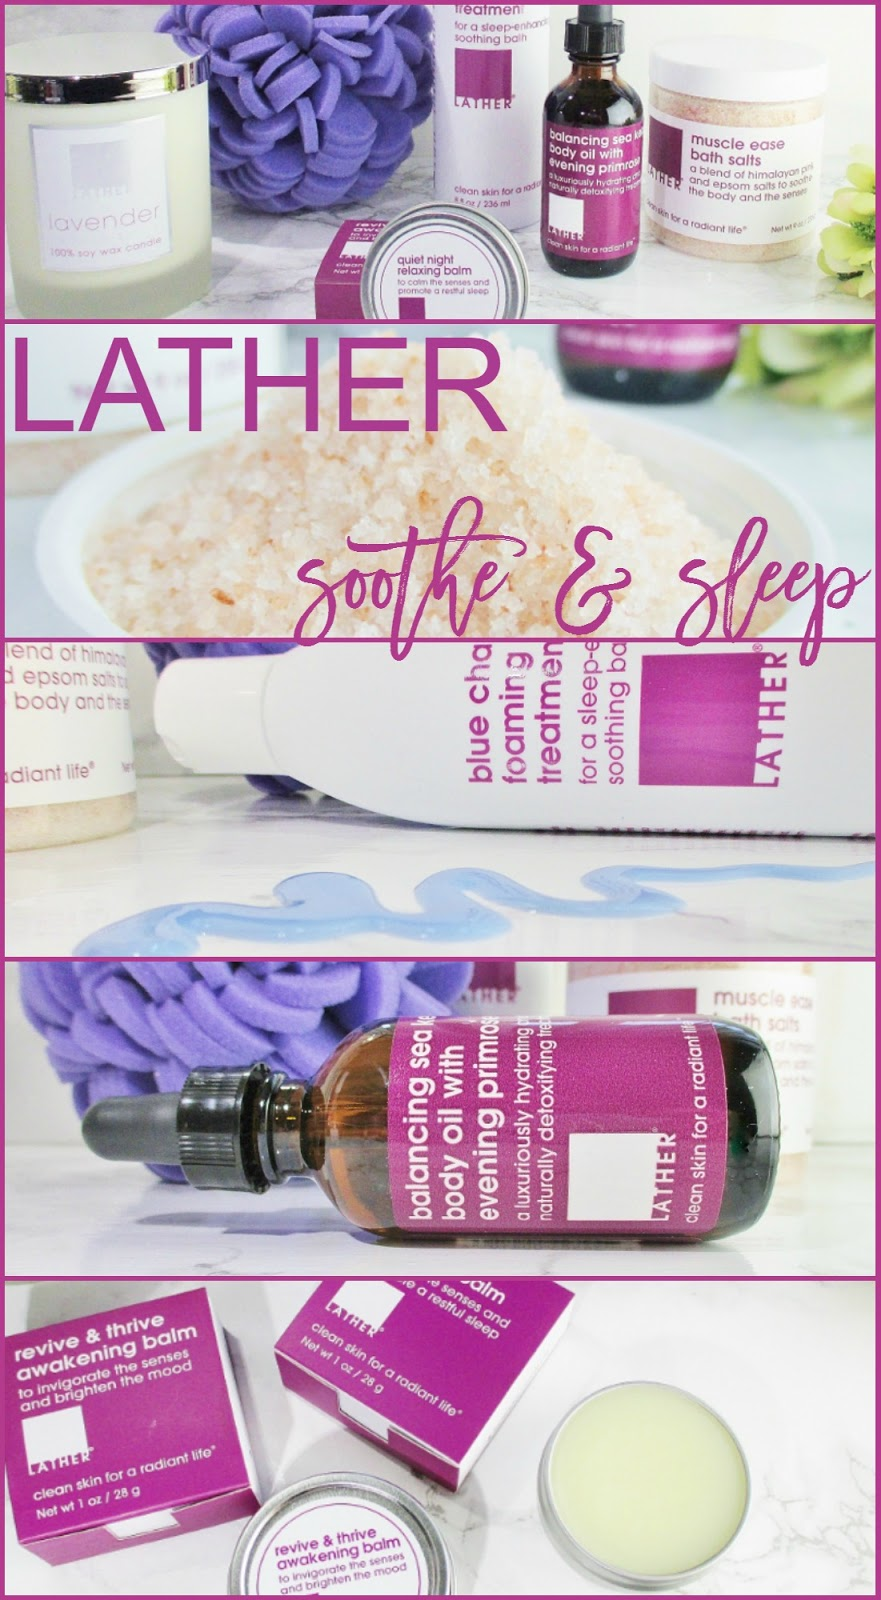 Lather-soothe-&-sleep-2